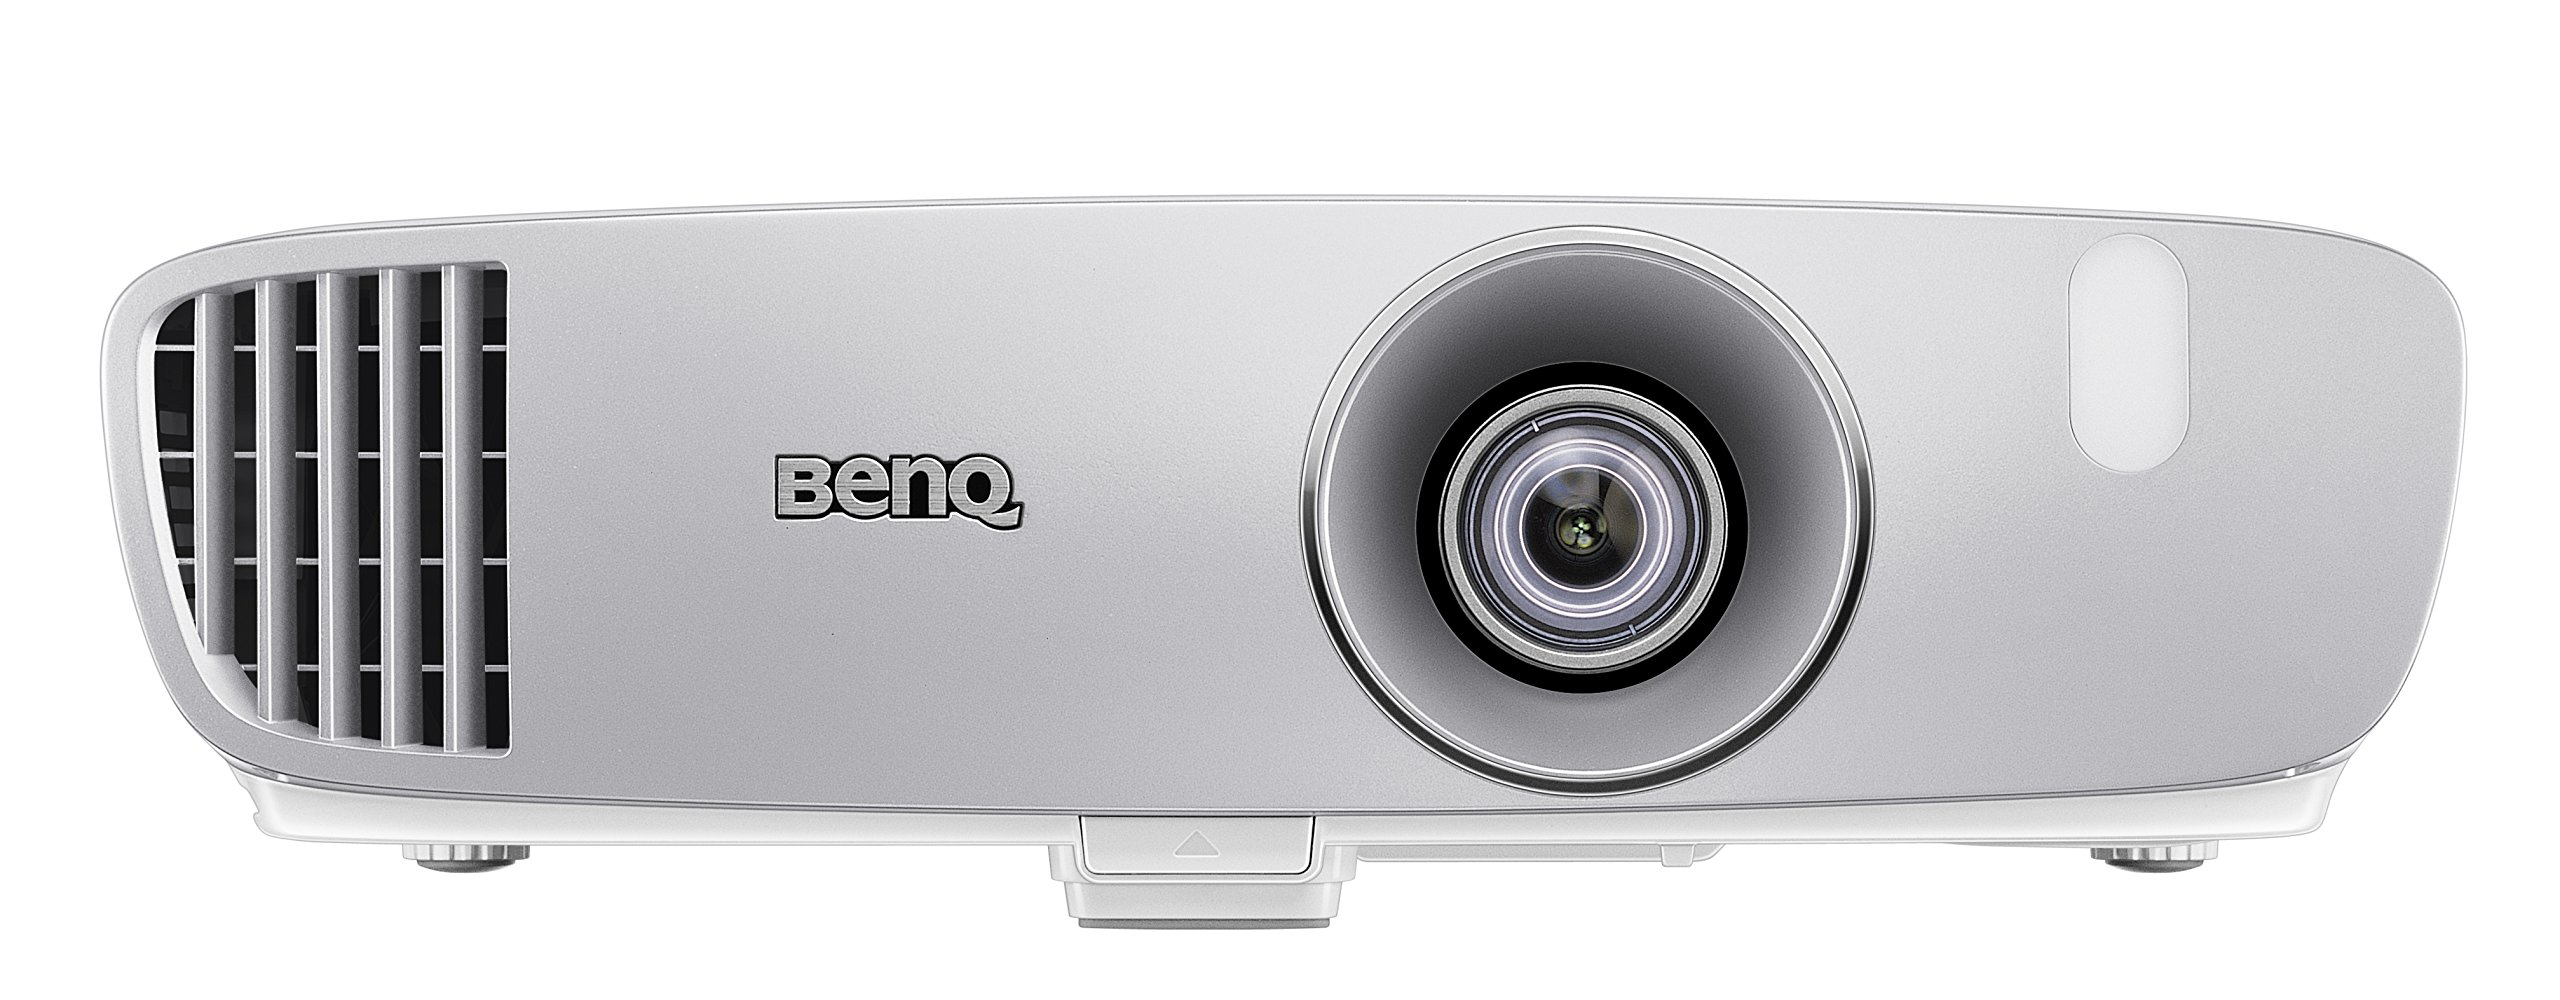 BenQ DLP HD 1080p Projector (HT2050) - 3D Home Theater Projector with All-Glass Cinema Grade Lens and RGBRGB Color Wheel by BenQ (Image #3)